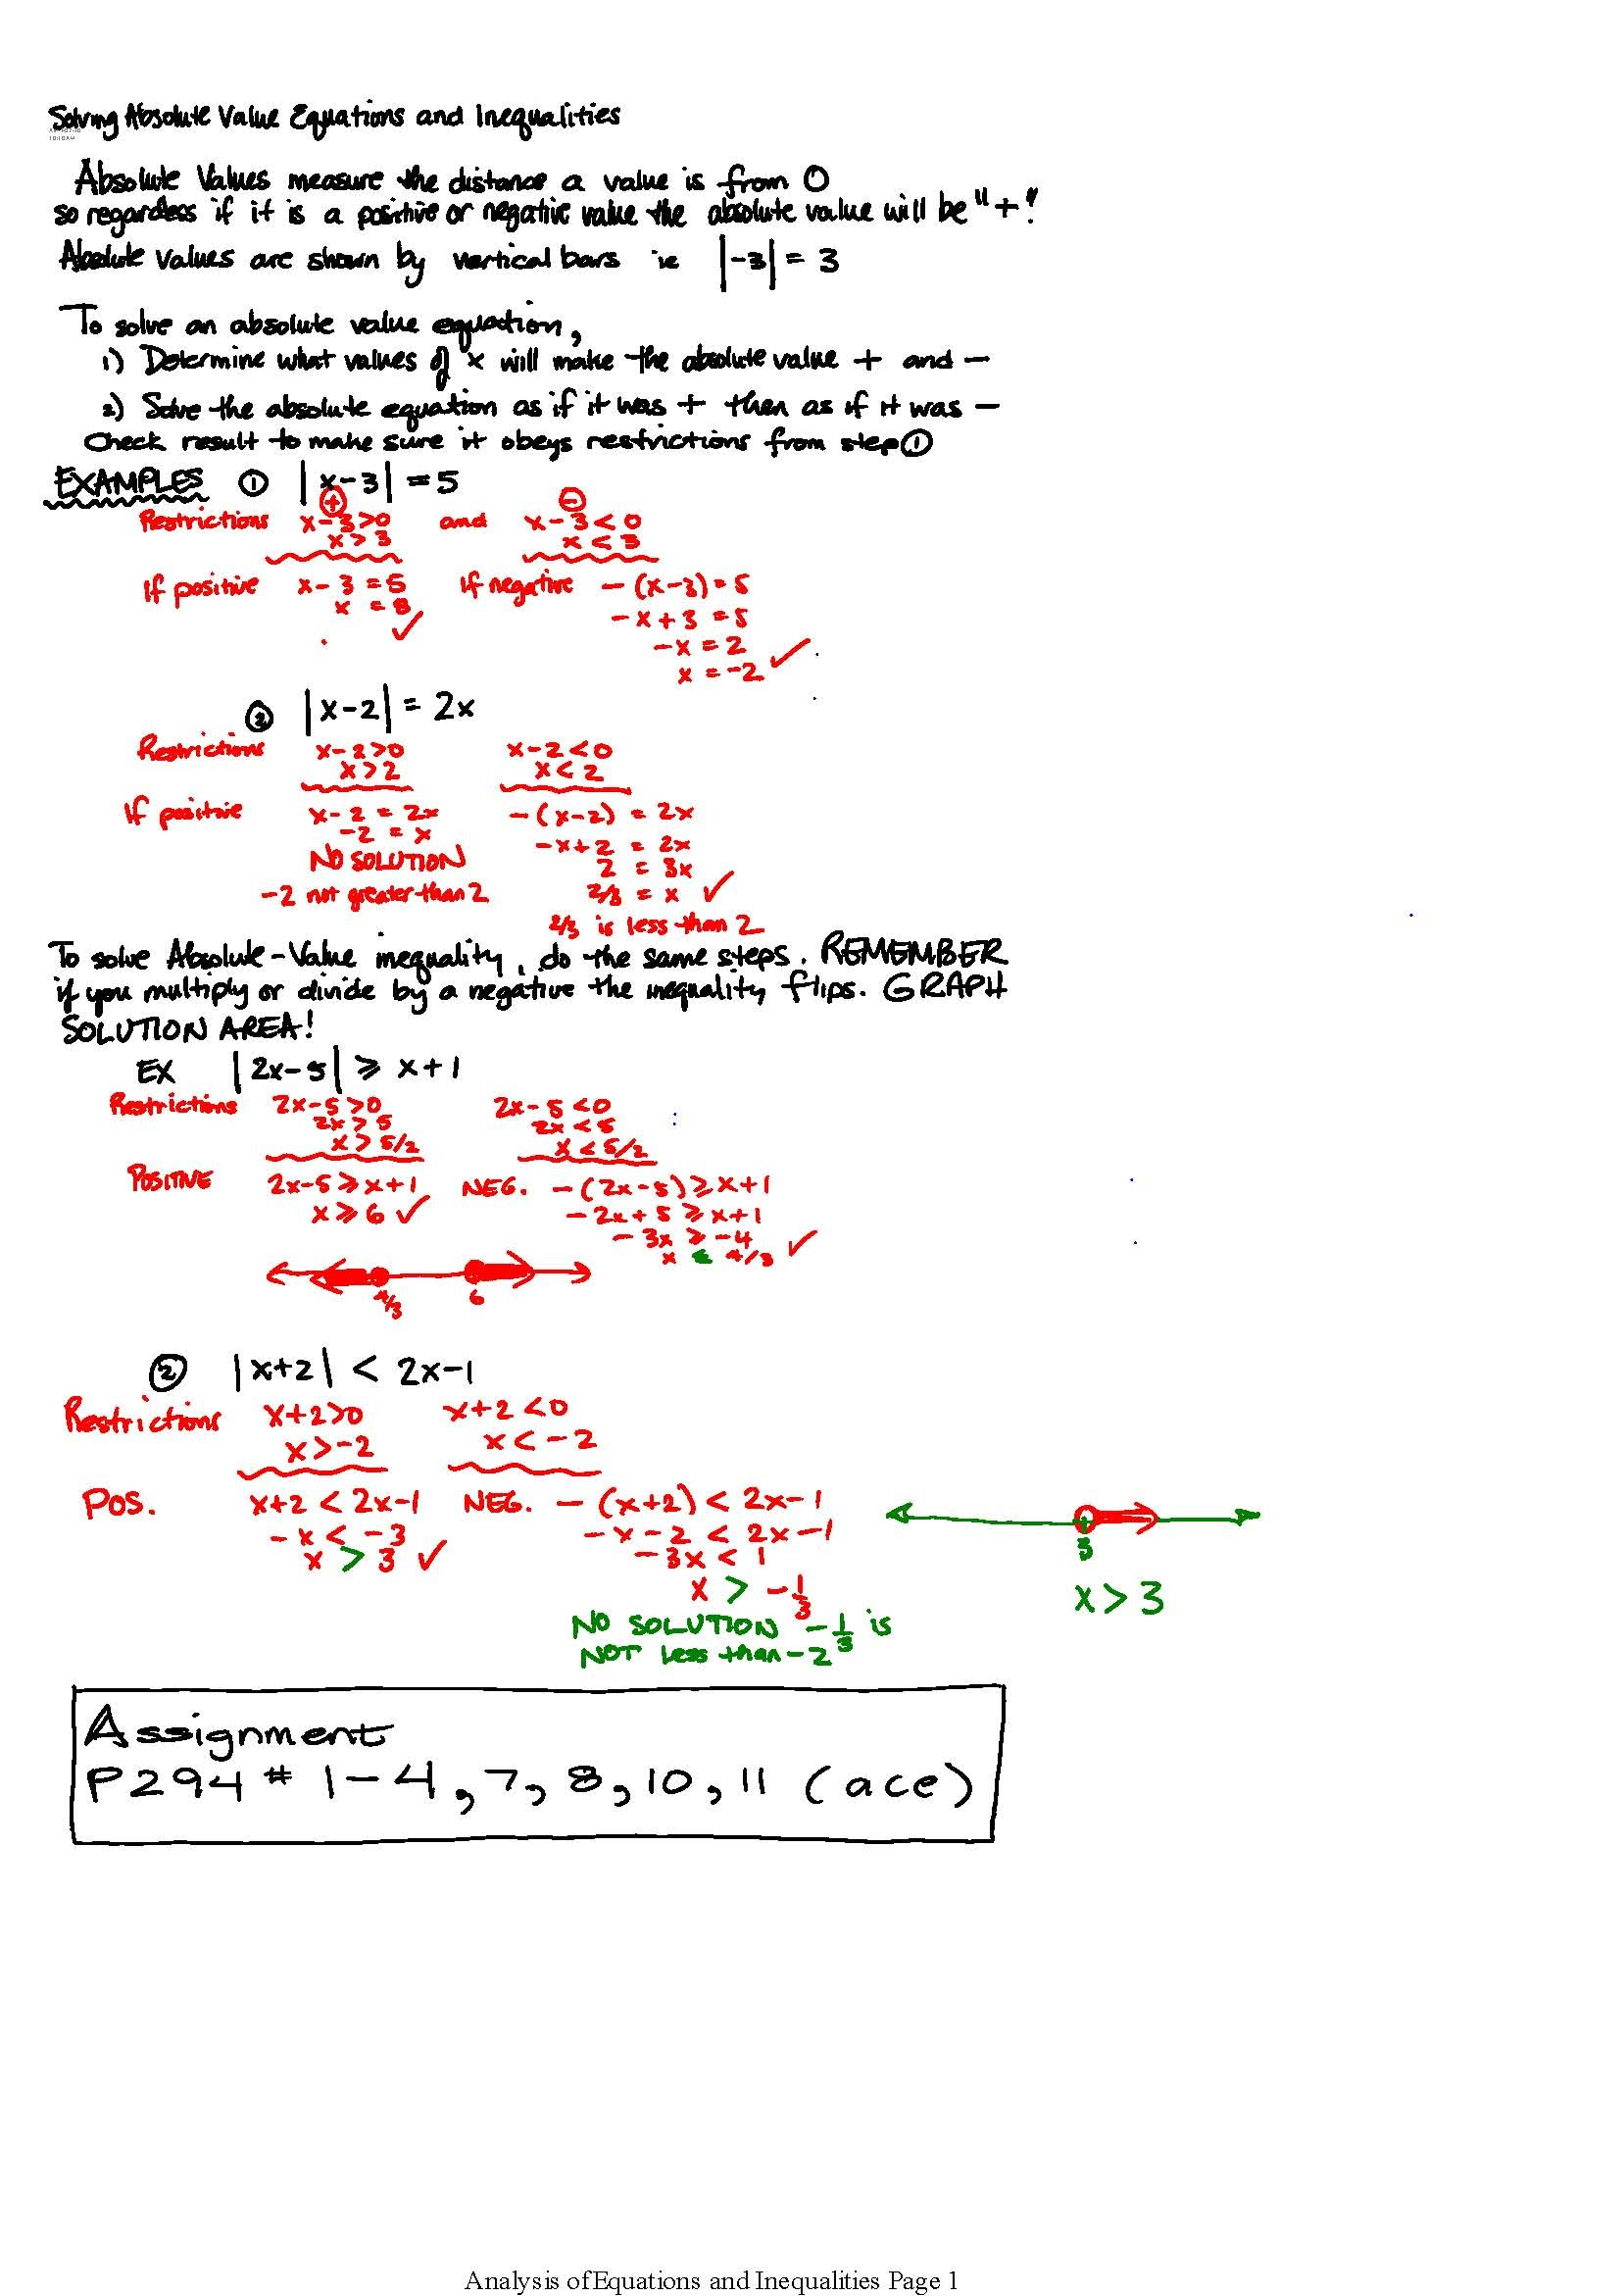 Worksheet Section 1 4 6b Solving Absolute Value Equations